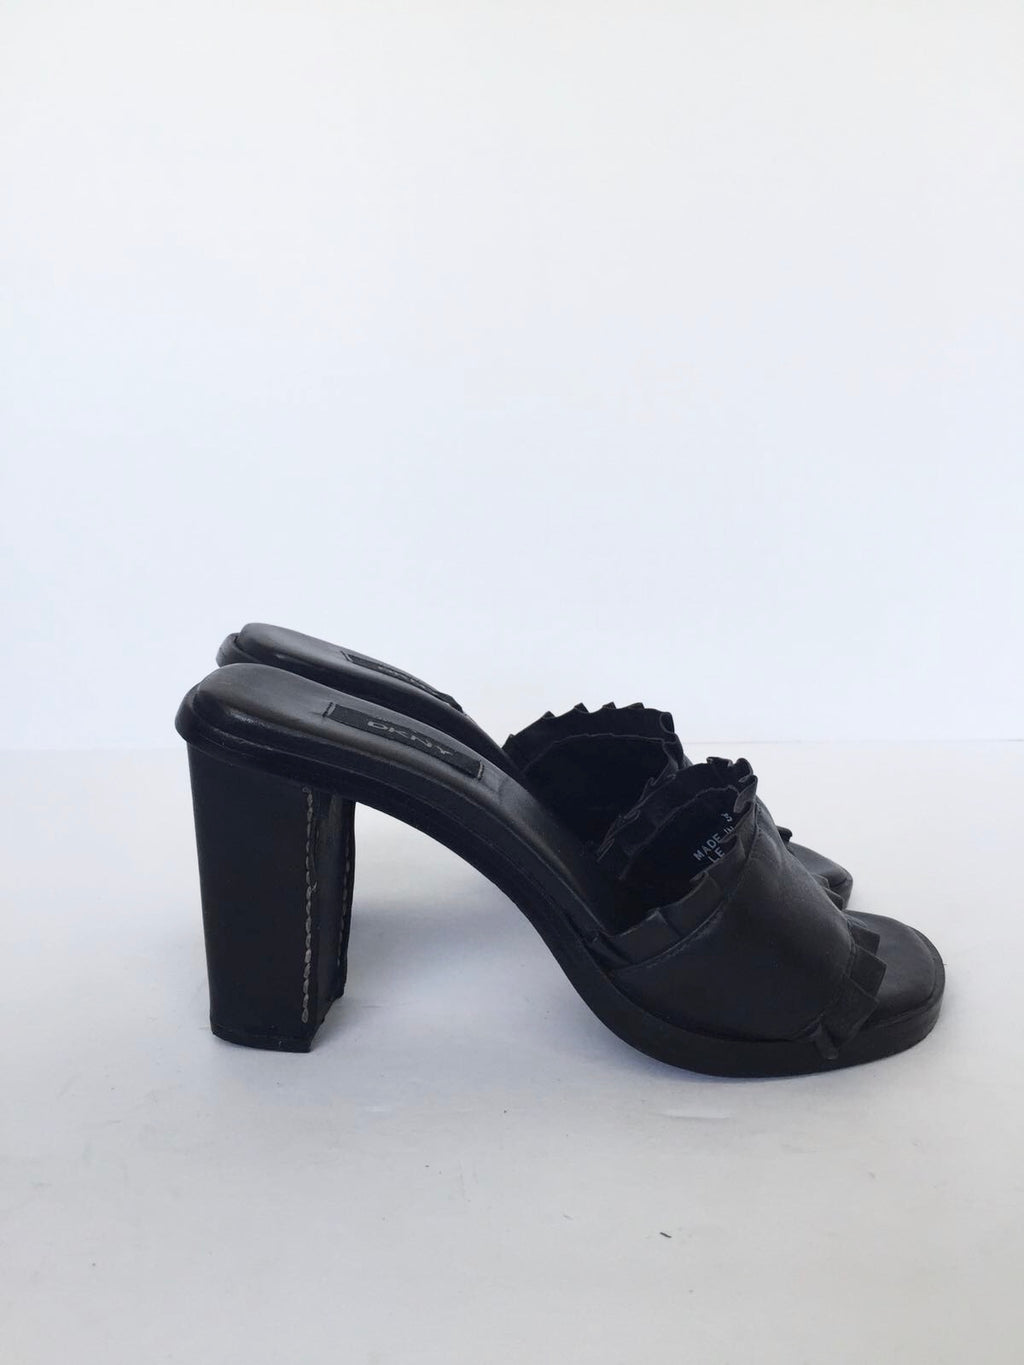 DKNY Black Leather Mule Sandals Size 5